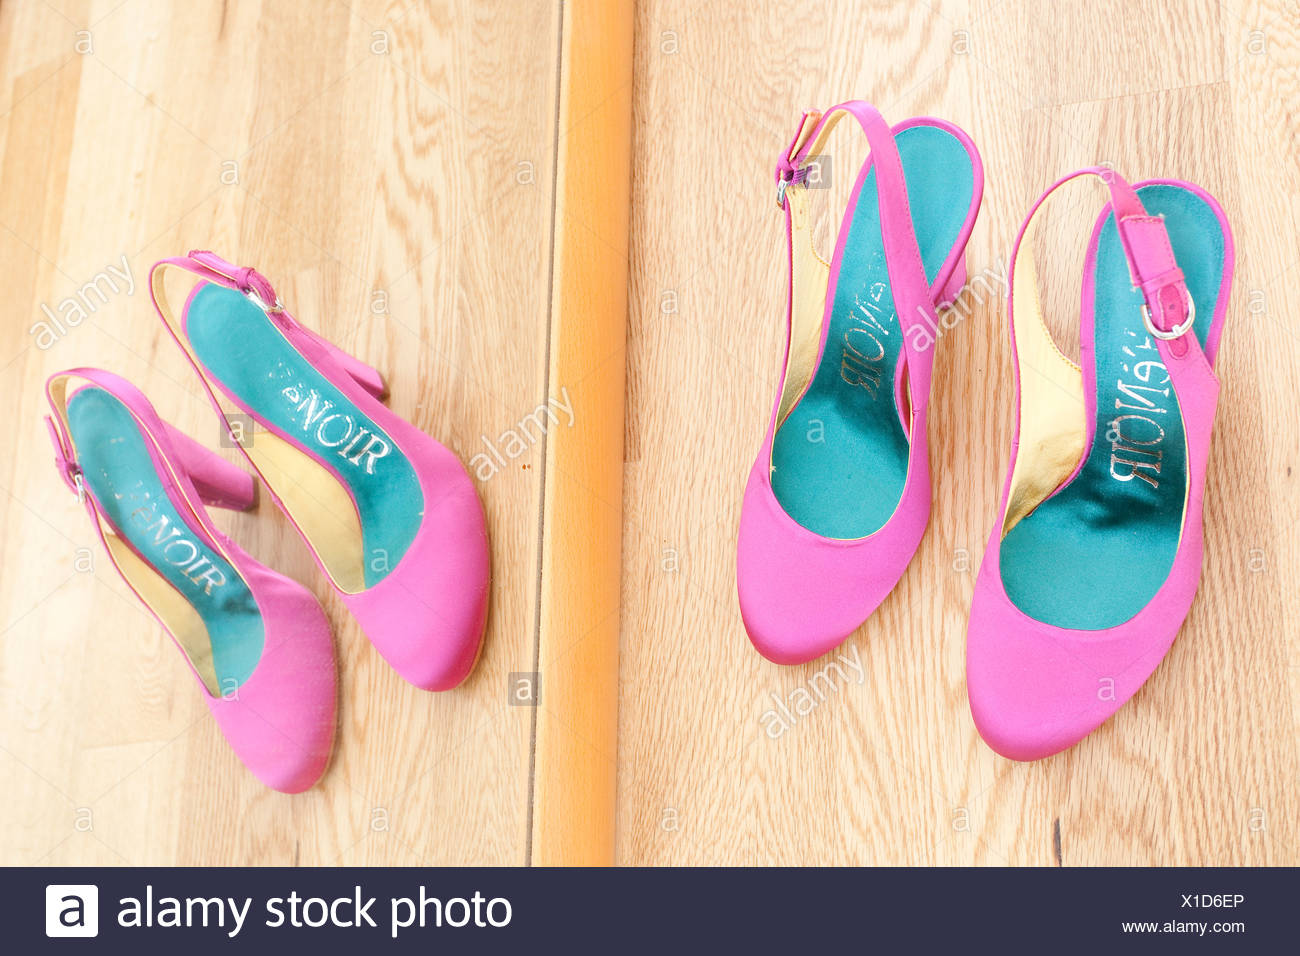 Bridal shoes standing in front of a mirror on parquet flooring - Stock Image